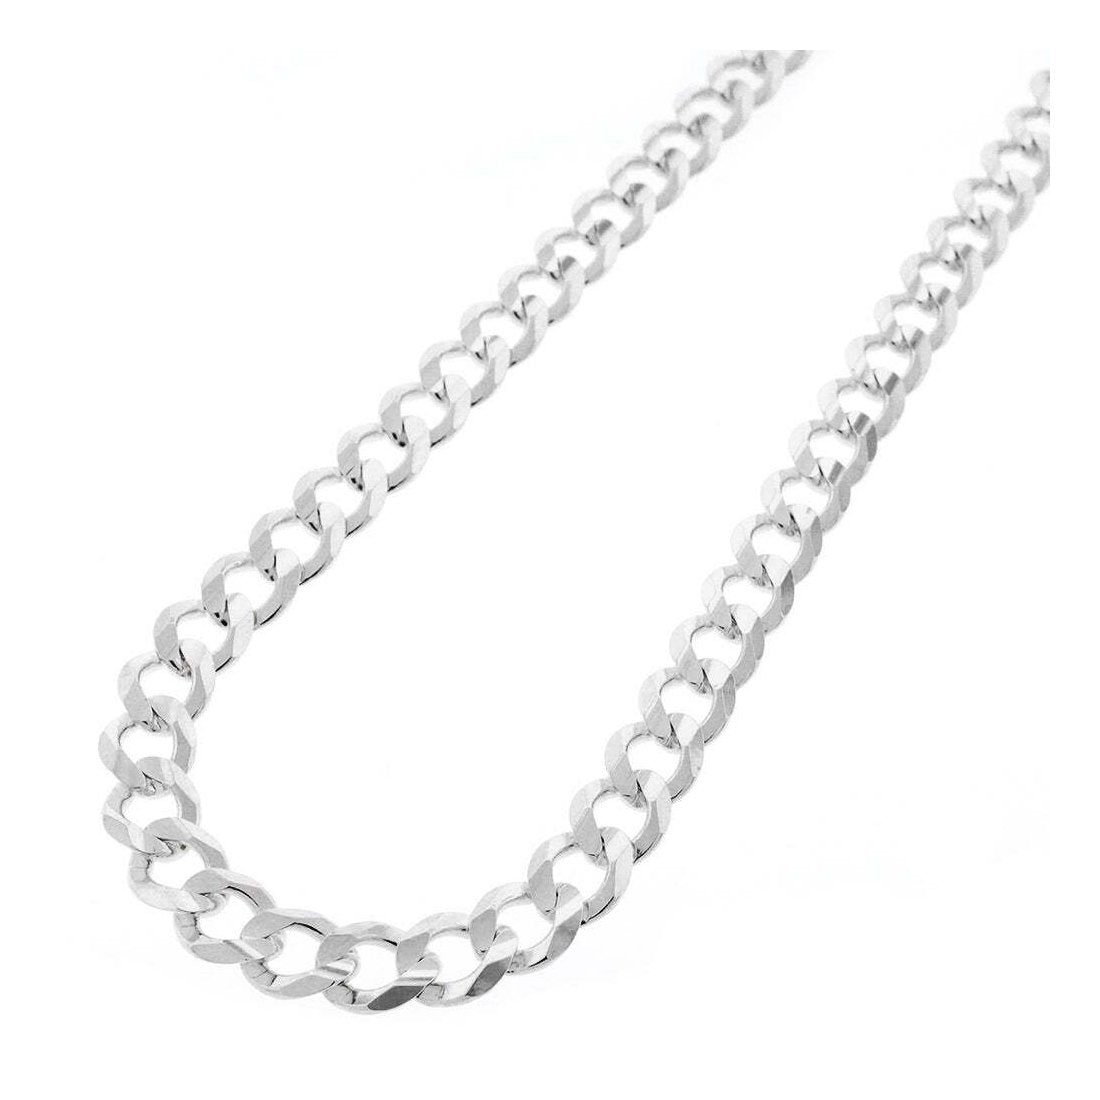 "7.5MM 180 Flat Pave Curb Chain .925 Solid Sterling Silver Sizes ""8-30"" Inches"